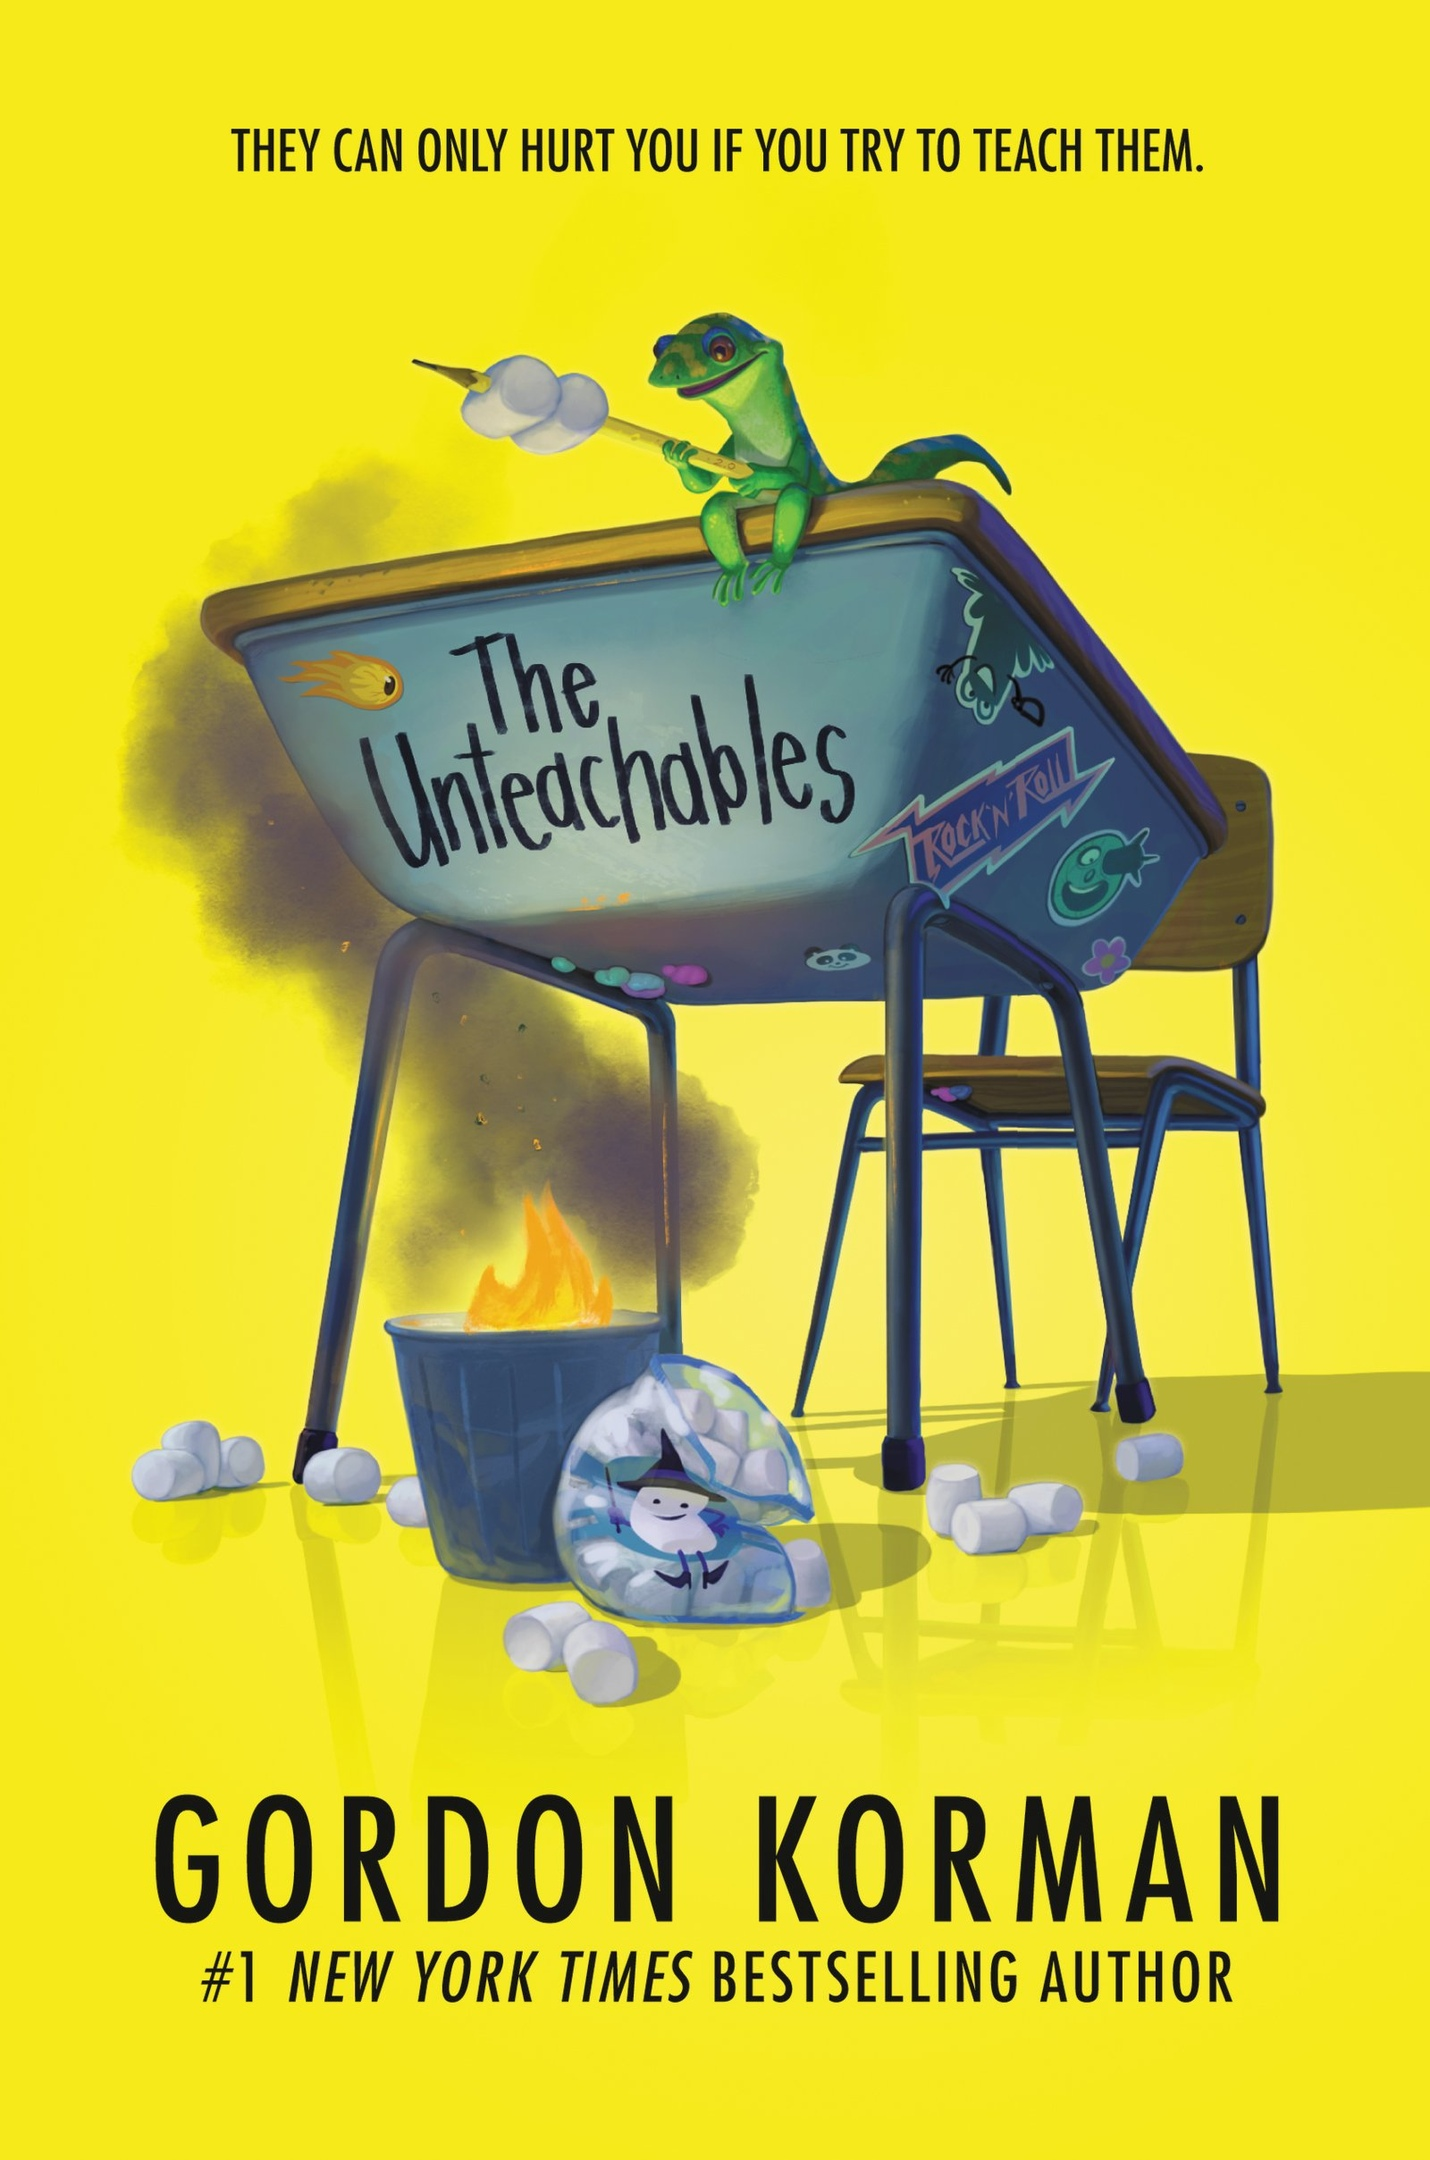 Gordon Korman – The Unteachables Genre: Author: